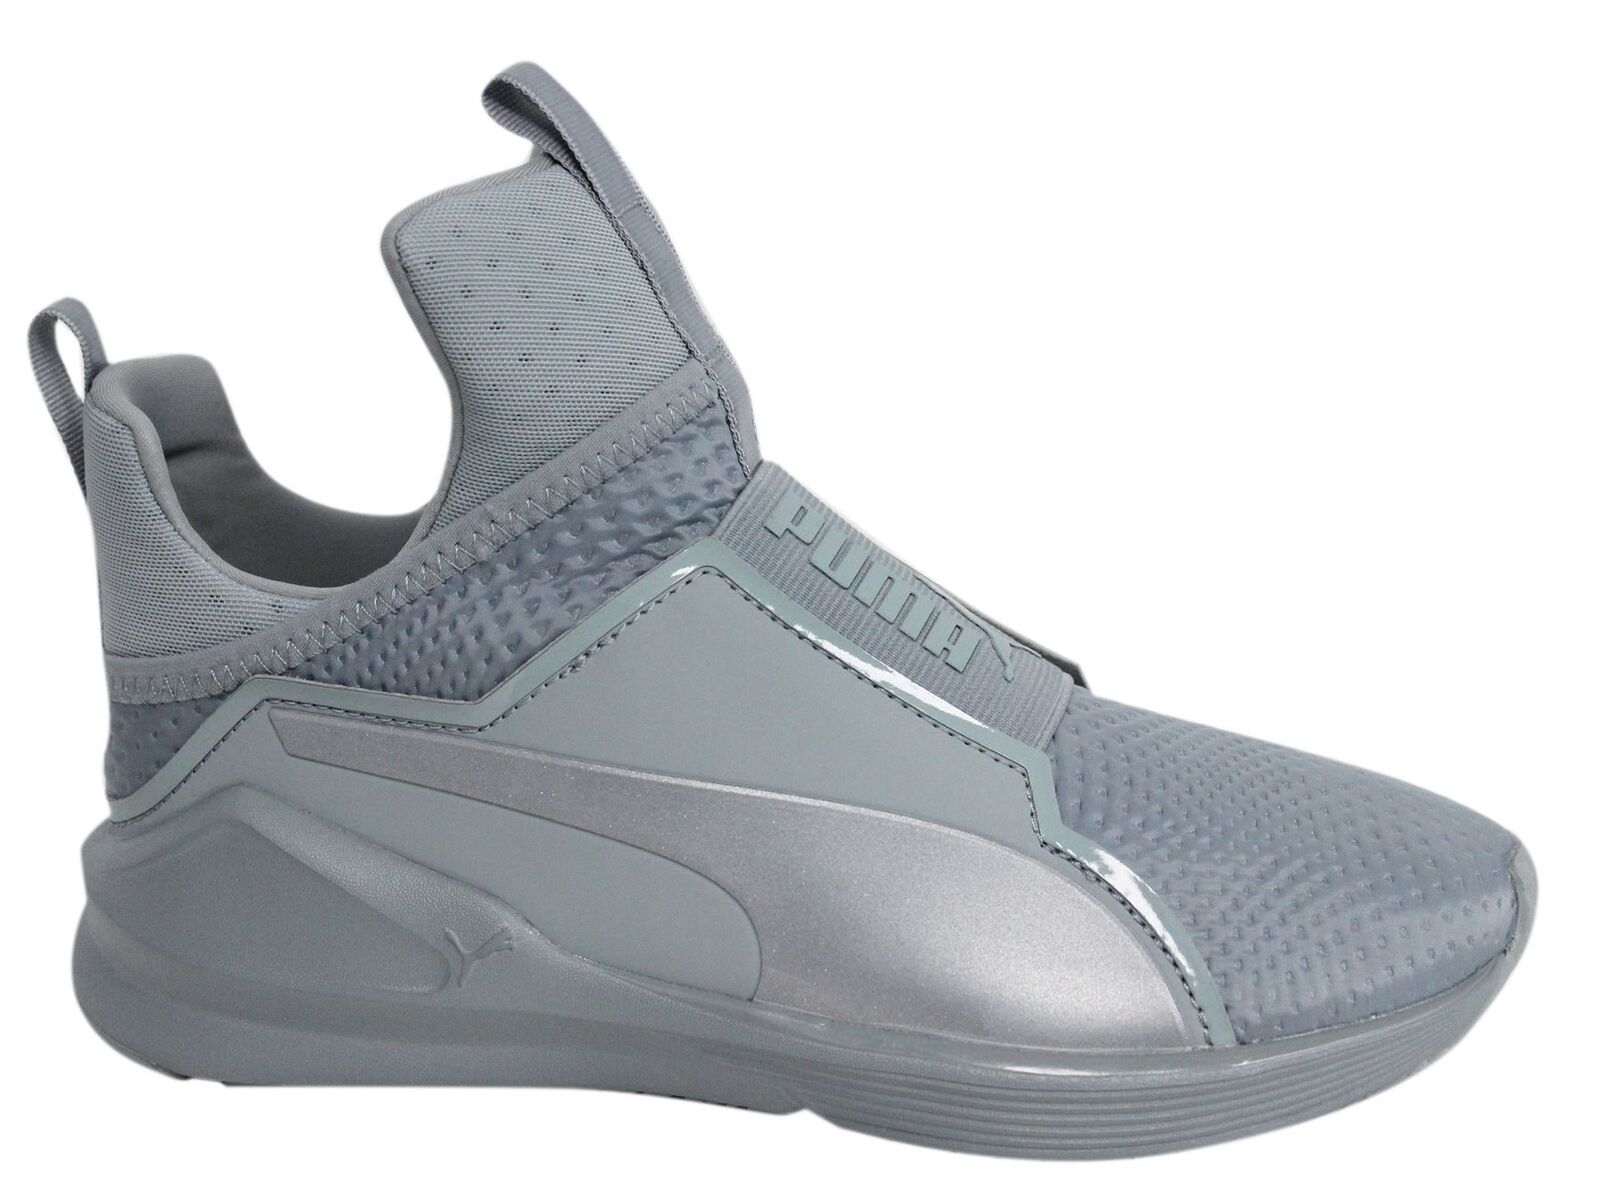 Puma Fierce Quilted 189418 Slip On Grau Textile Damenschuhe Trainers 189418 Quilted 02 M16 4a5867